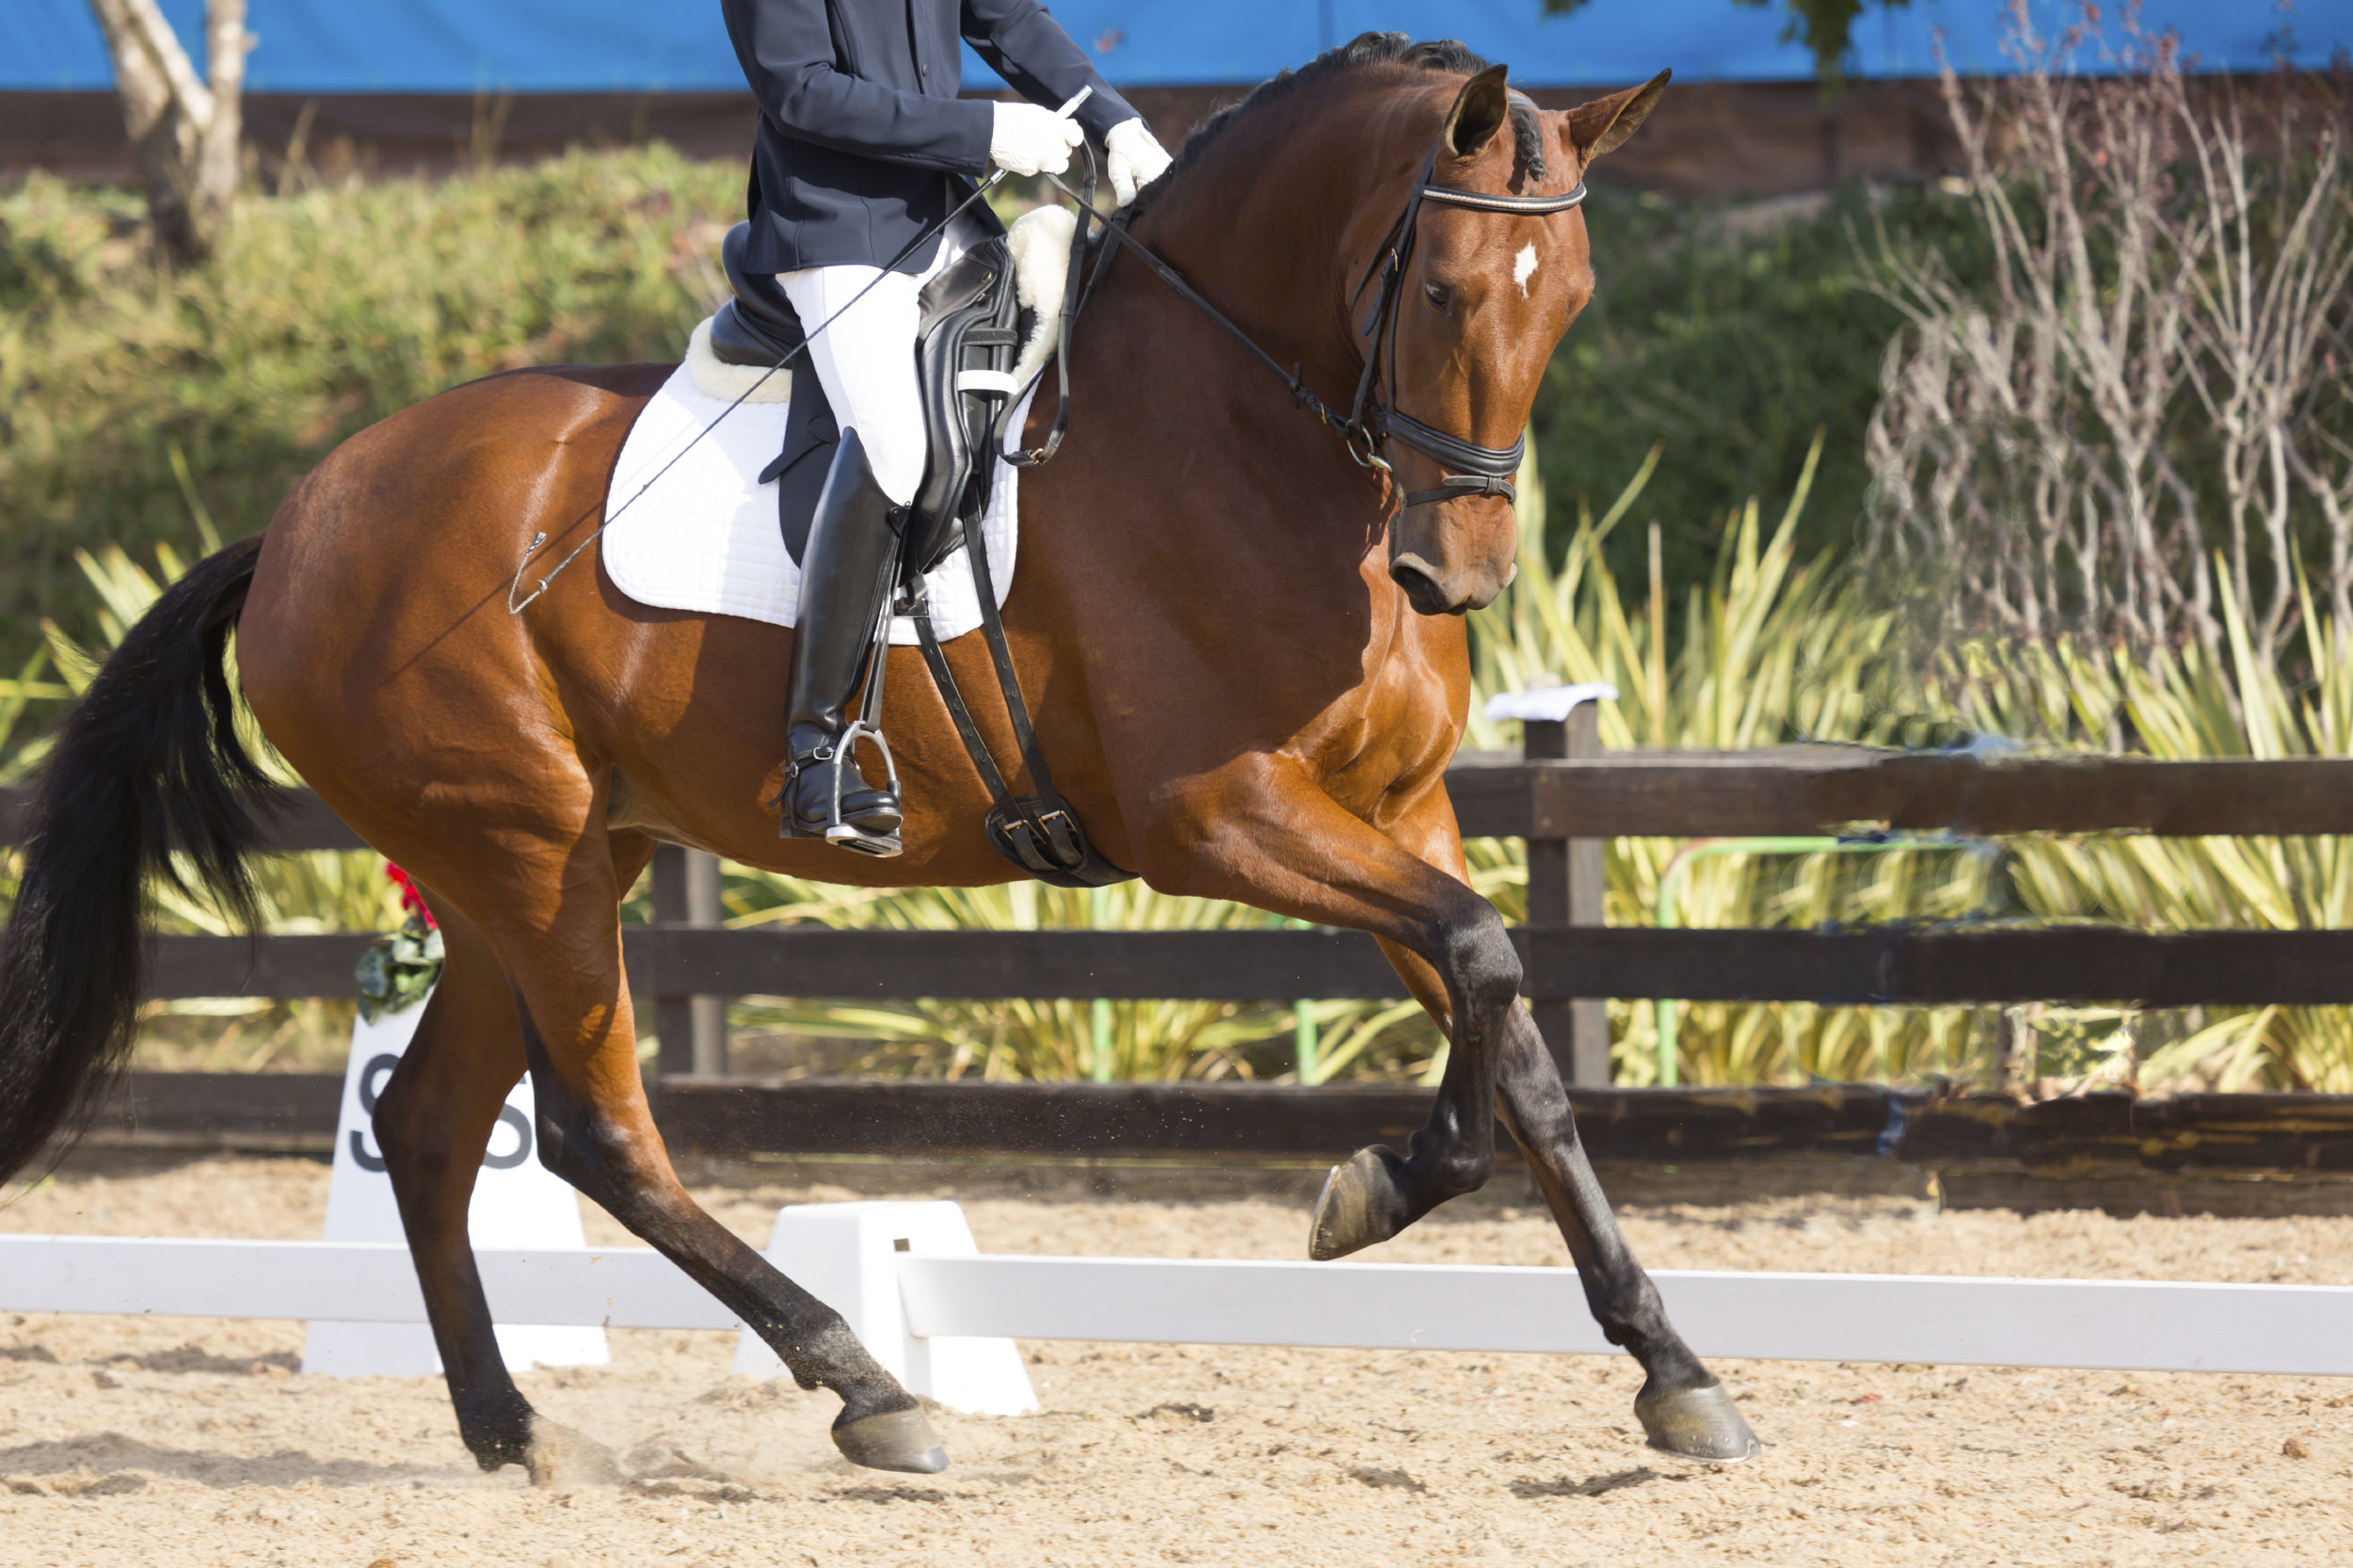 dressage-morphology-clinics-classes-advise-spain-andalusia-seville